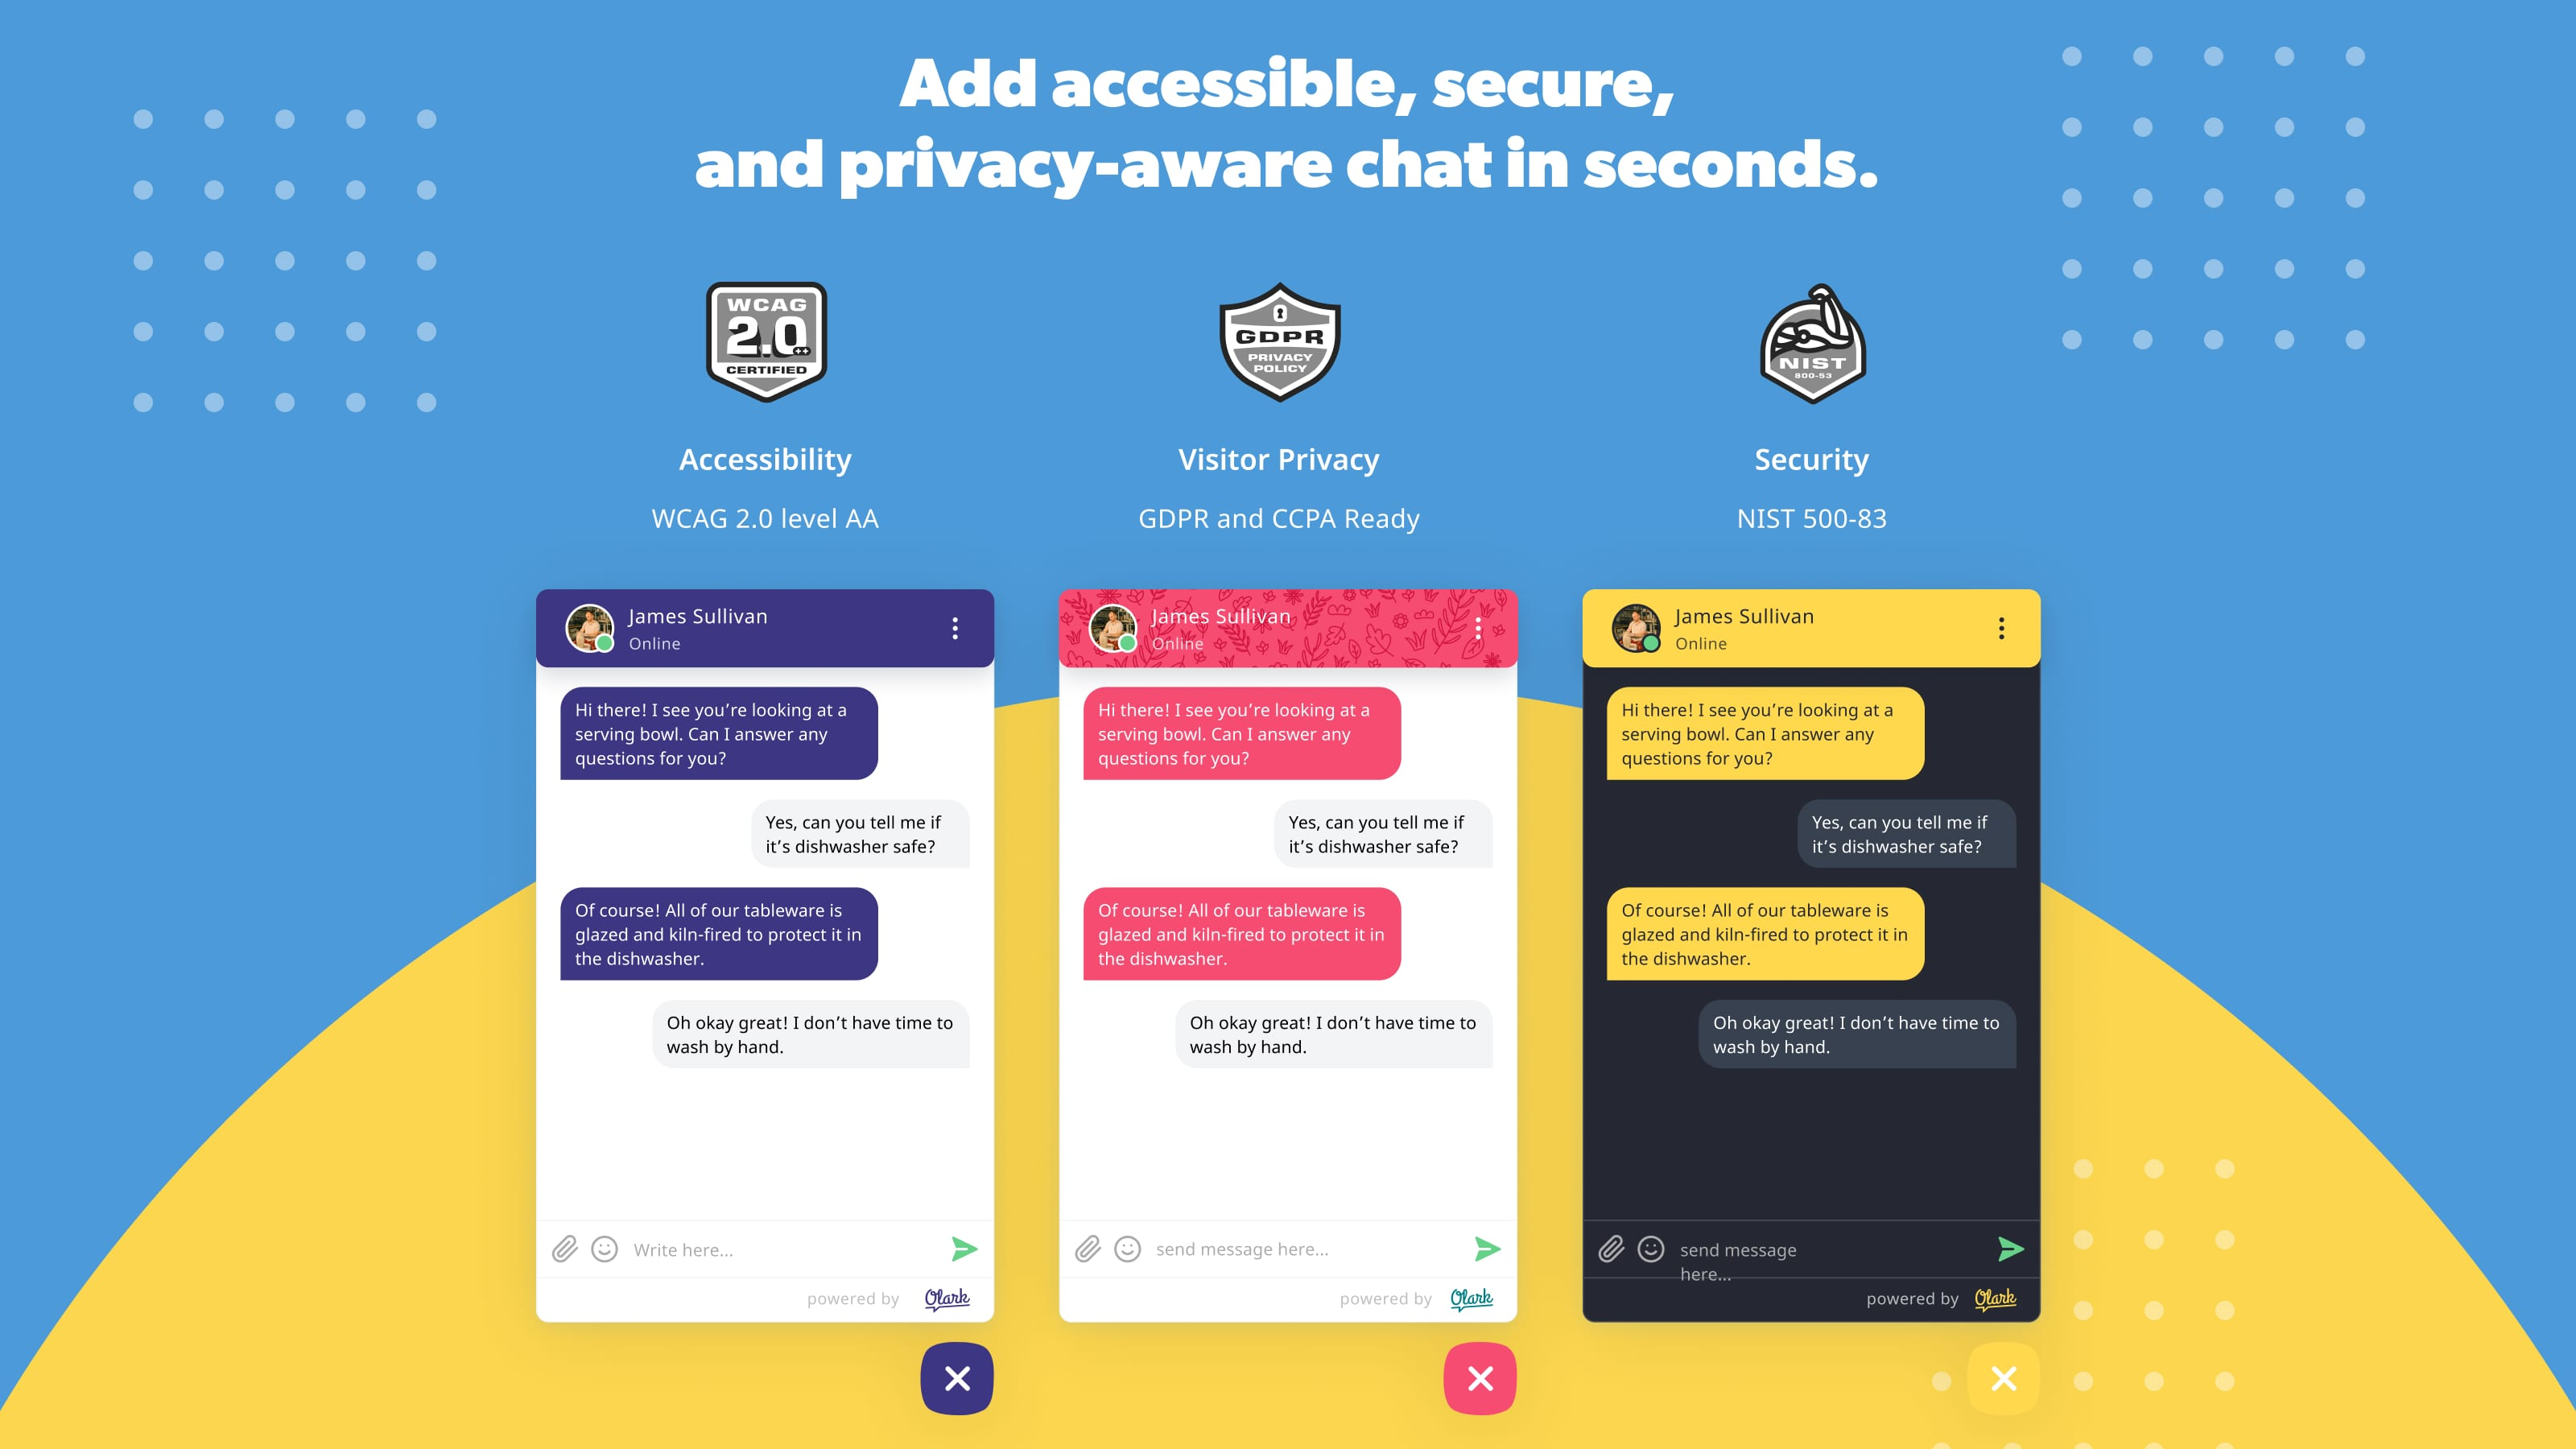 Add accessible, secure, and privacy-aware chat in seconds.